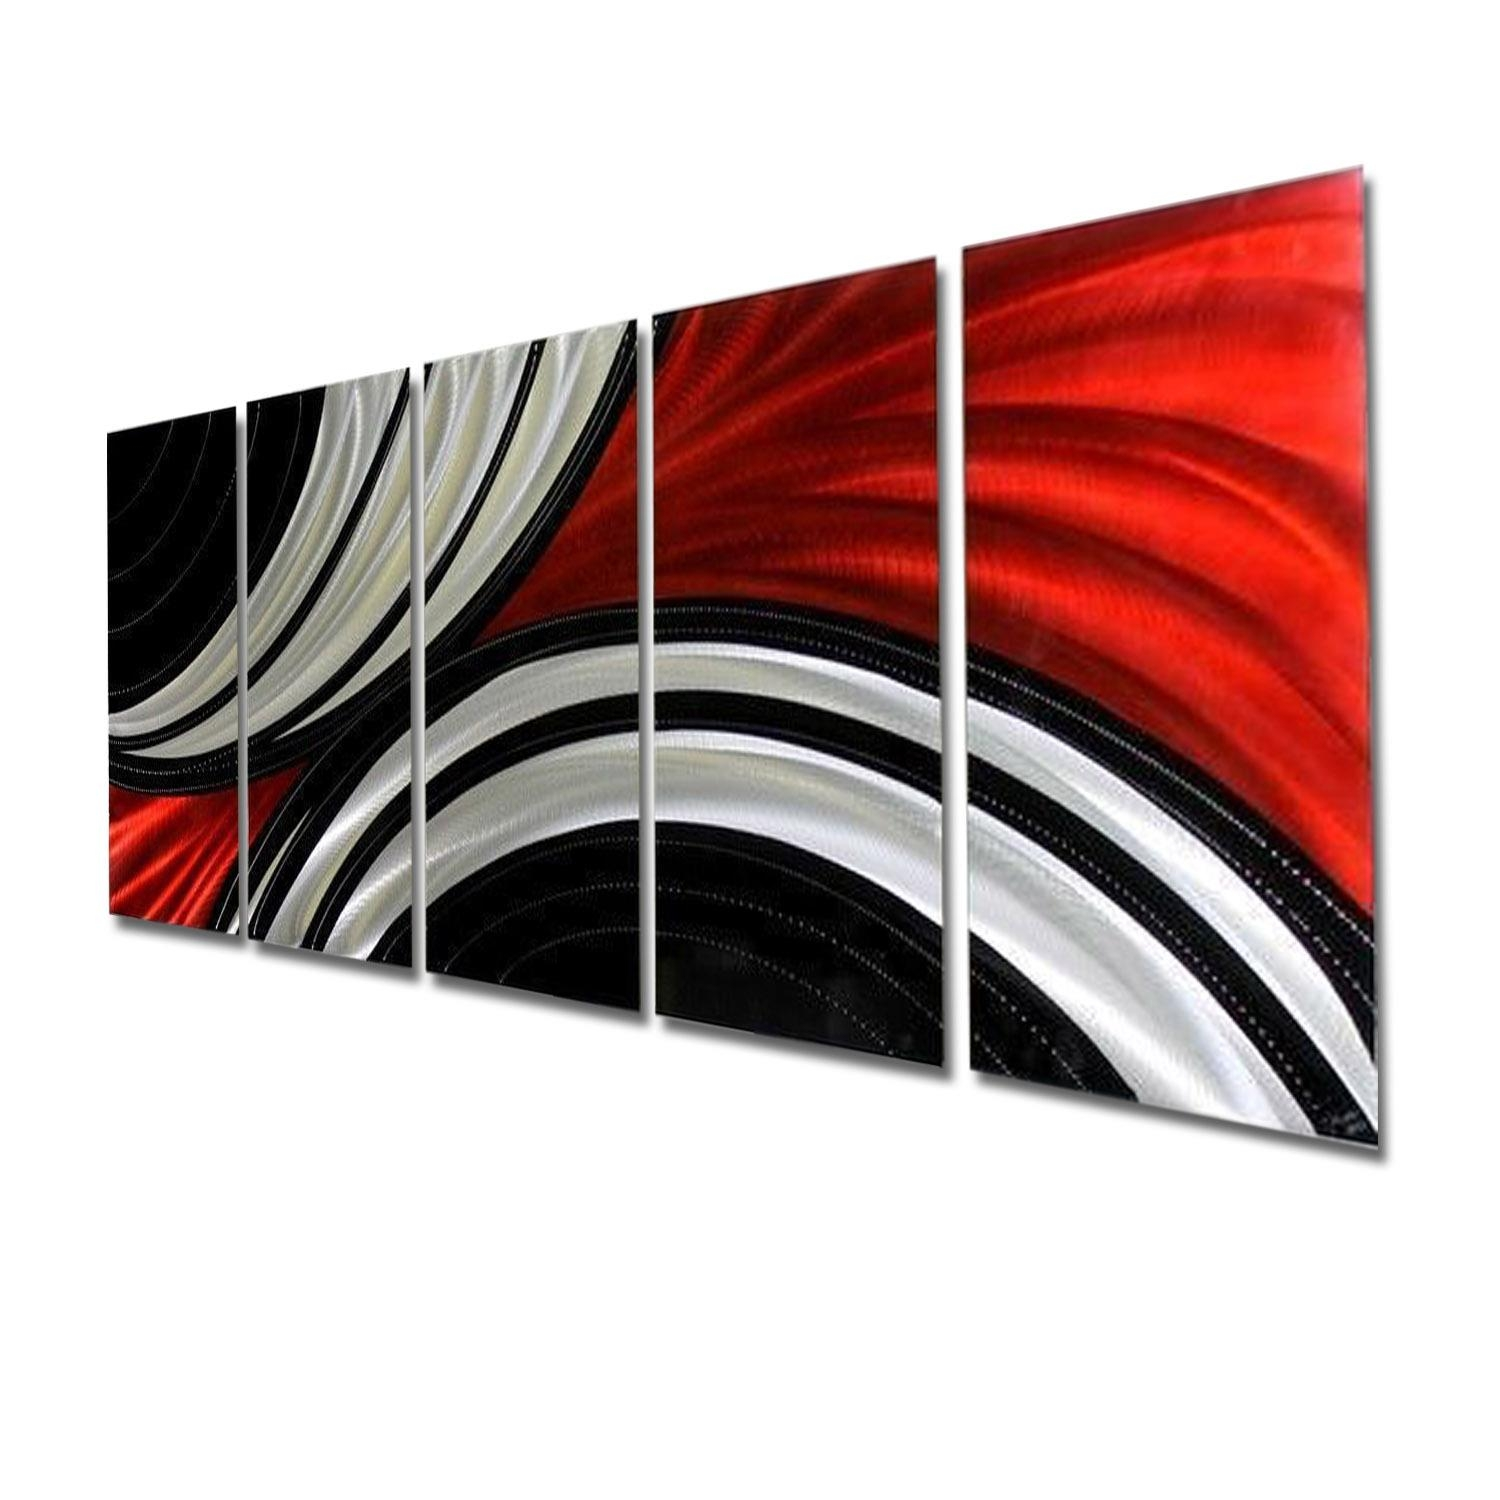 Feverish Perception Xl – Red, Black & Silver Abstract Metal Wall With Regard To Black Silver Wall Art (Image 5 of 20)